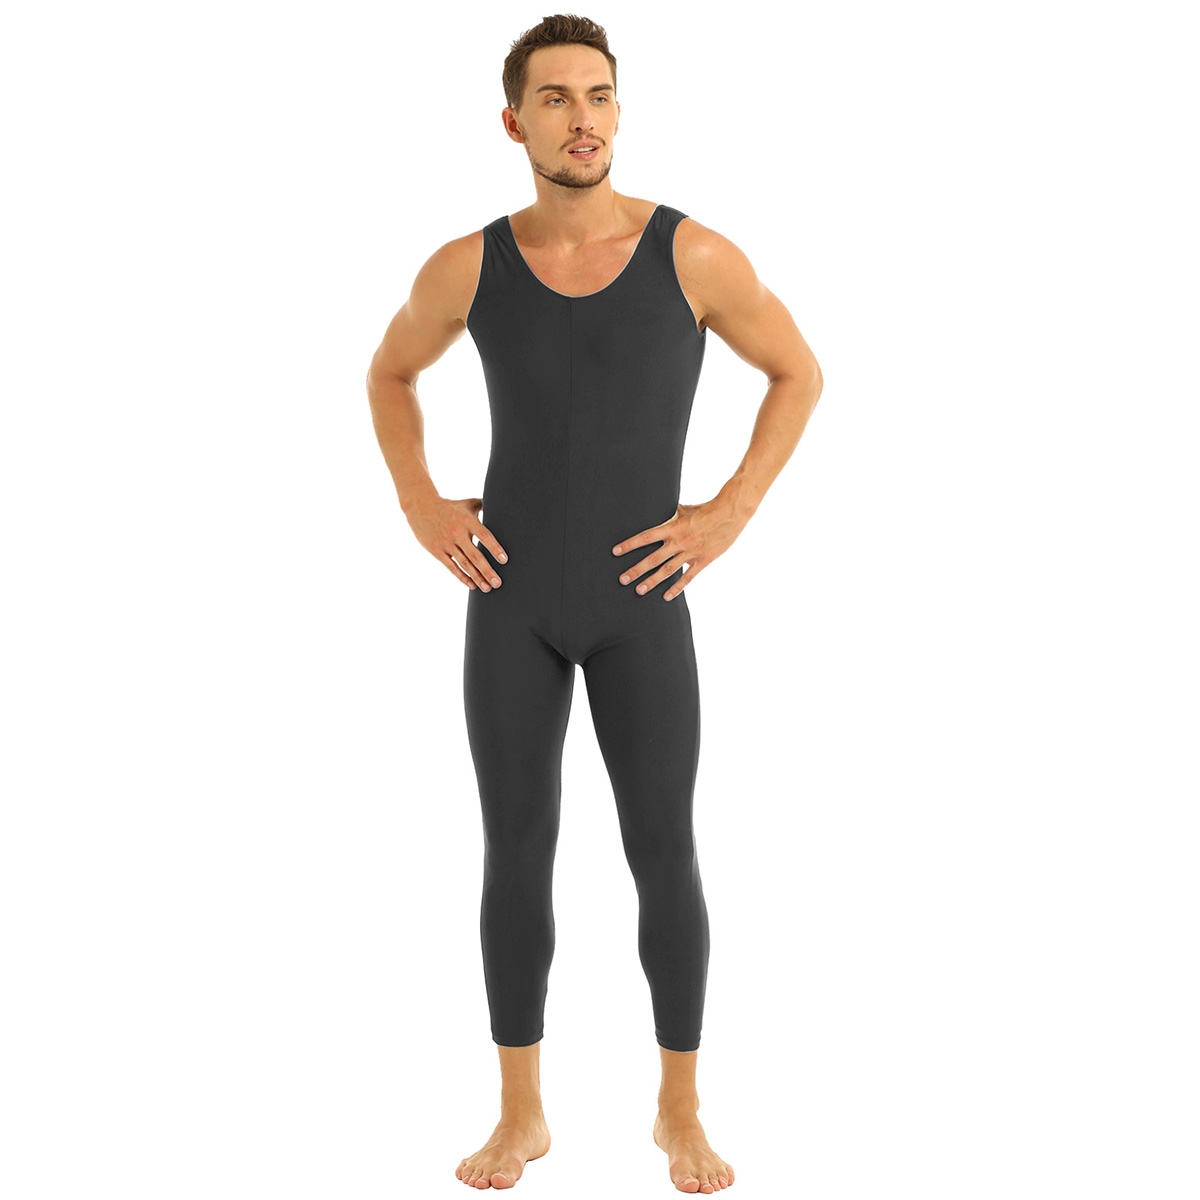 Men Sleeveless Leotard Bodysuit Lycra Tights Leggings for Ballet Dance Vest Teddy Sports Unitard Catsuit Male Dancewear Jumpsuit 16